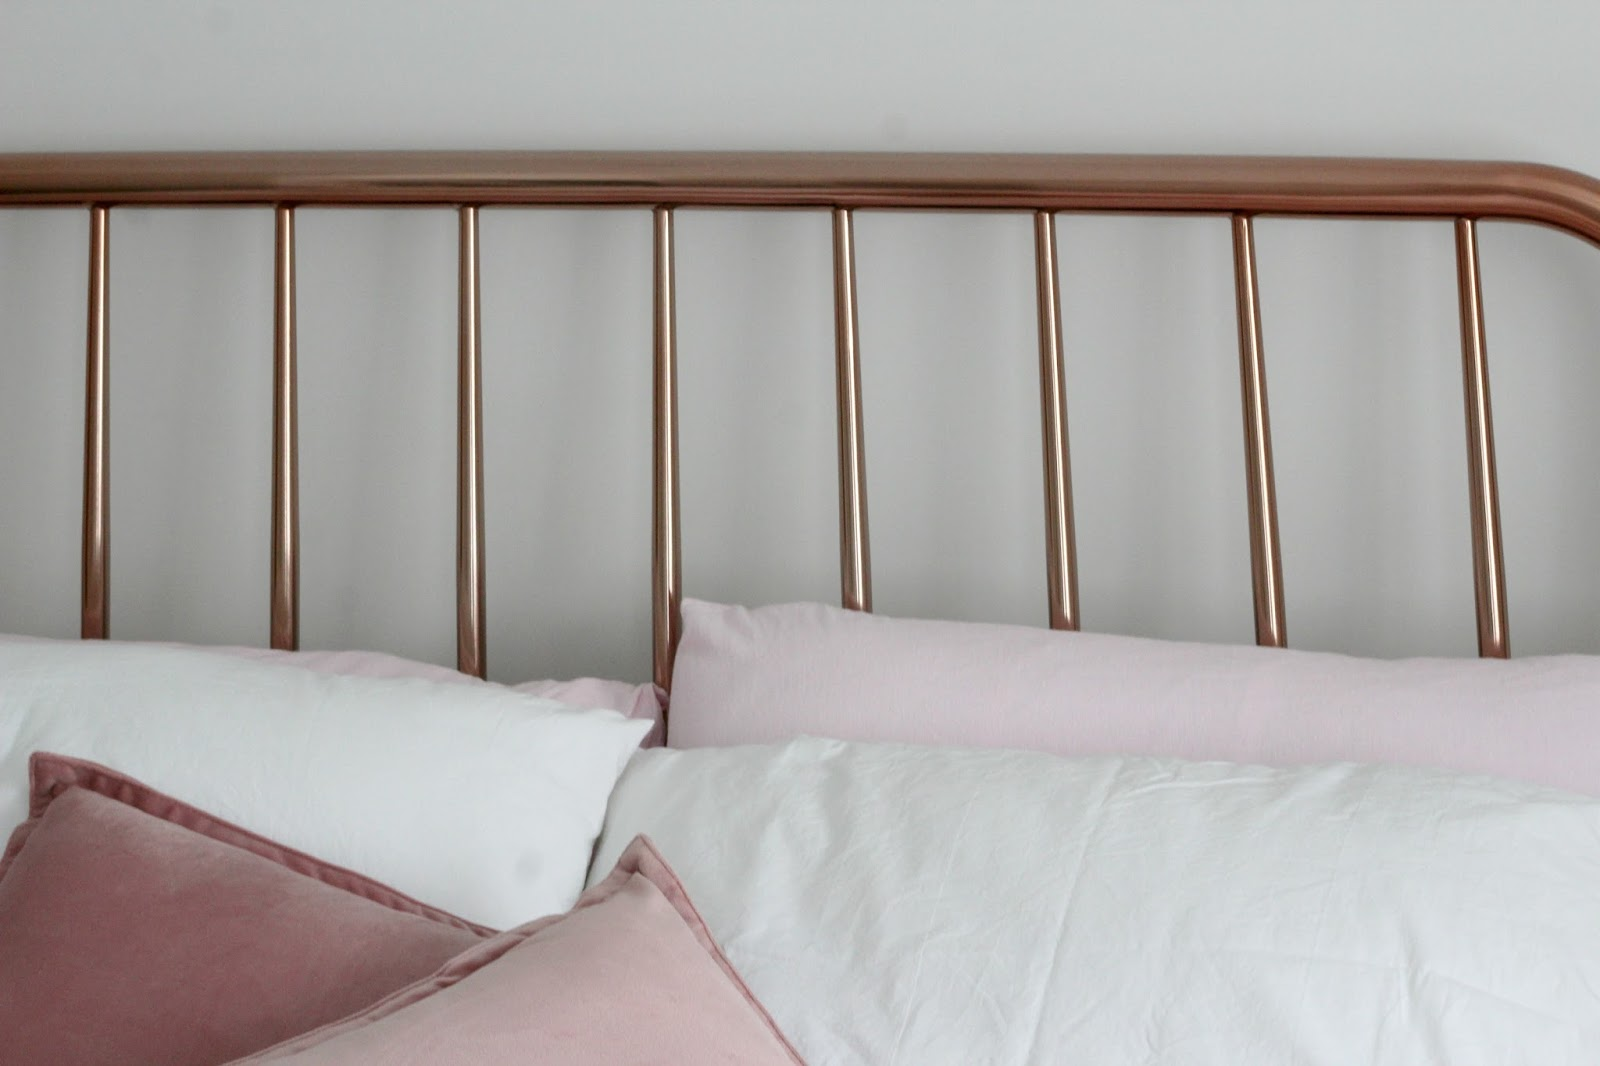 copper-alana-bed-frame-made